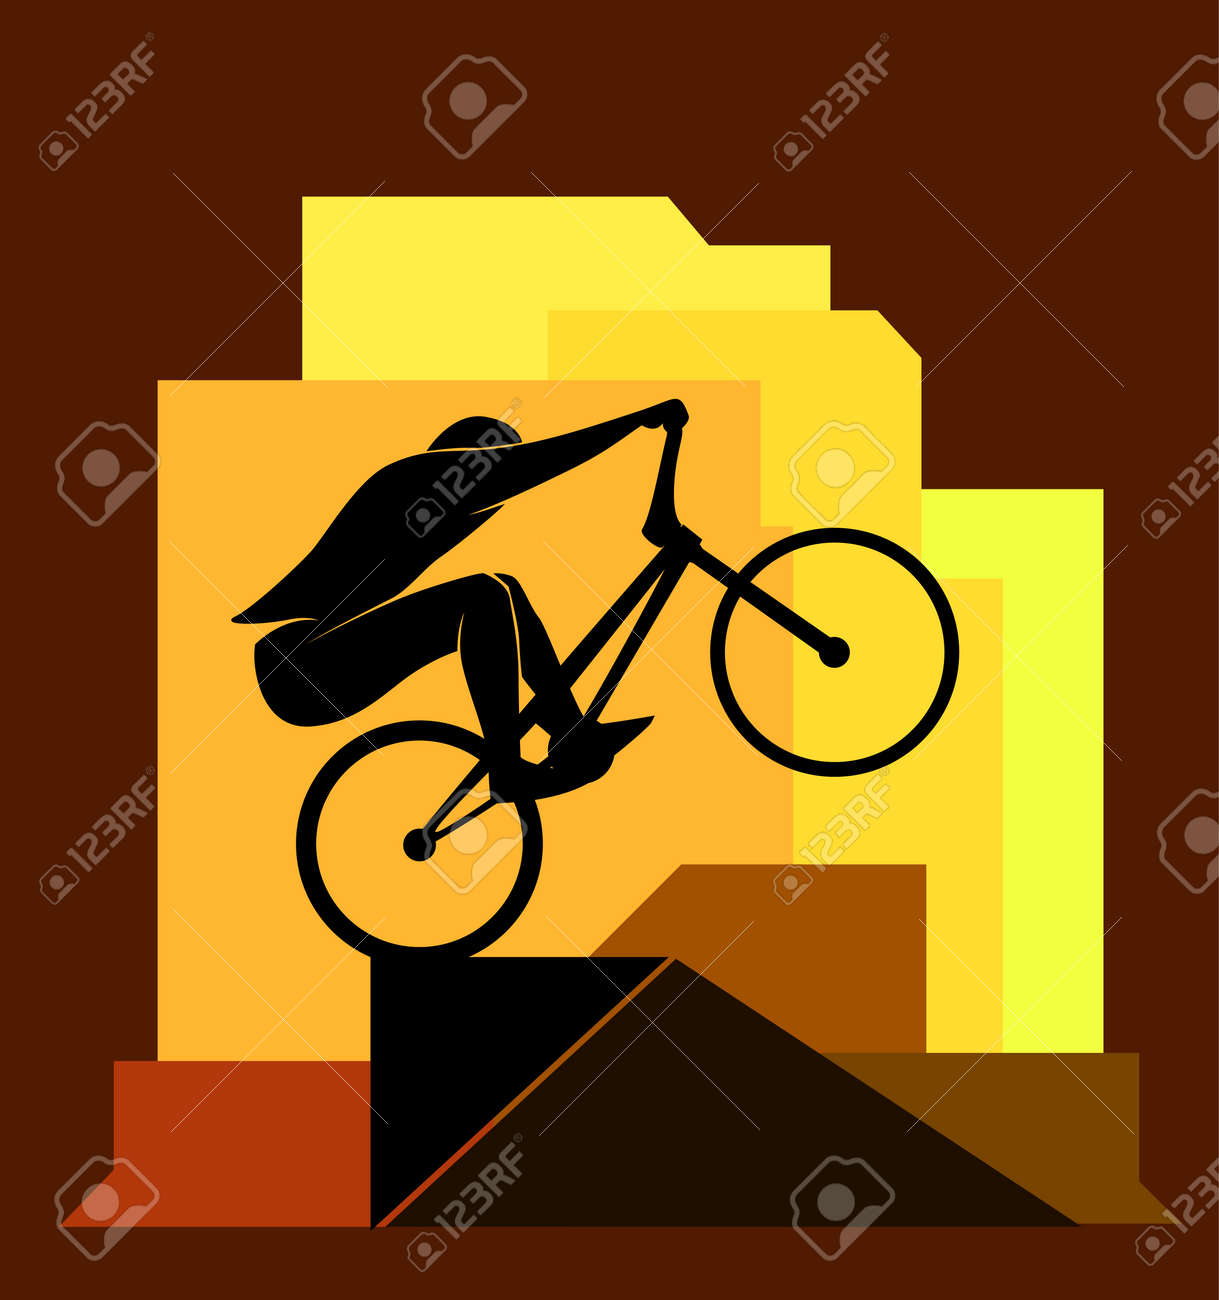 Bikycle Rider Jumps On Obstacle, Extreme Sport, Vector Illustration ...